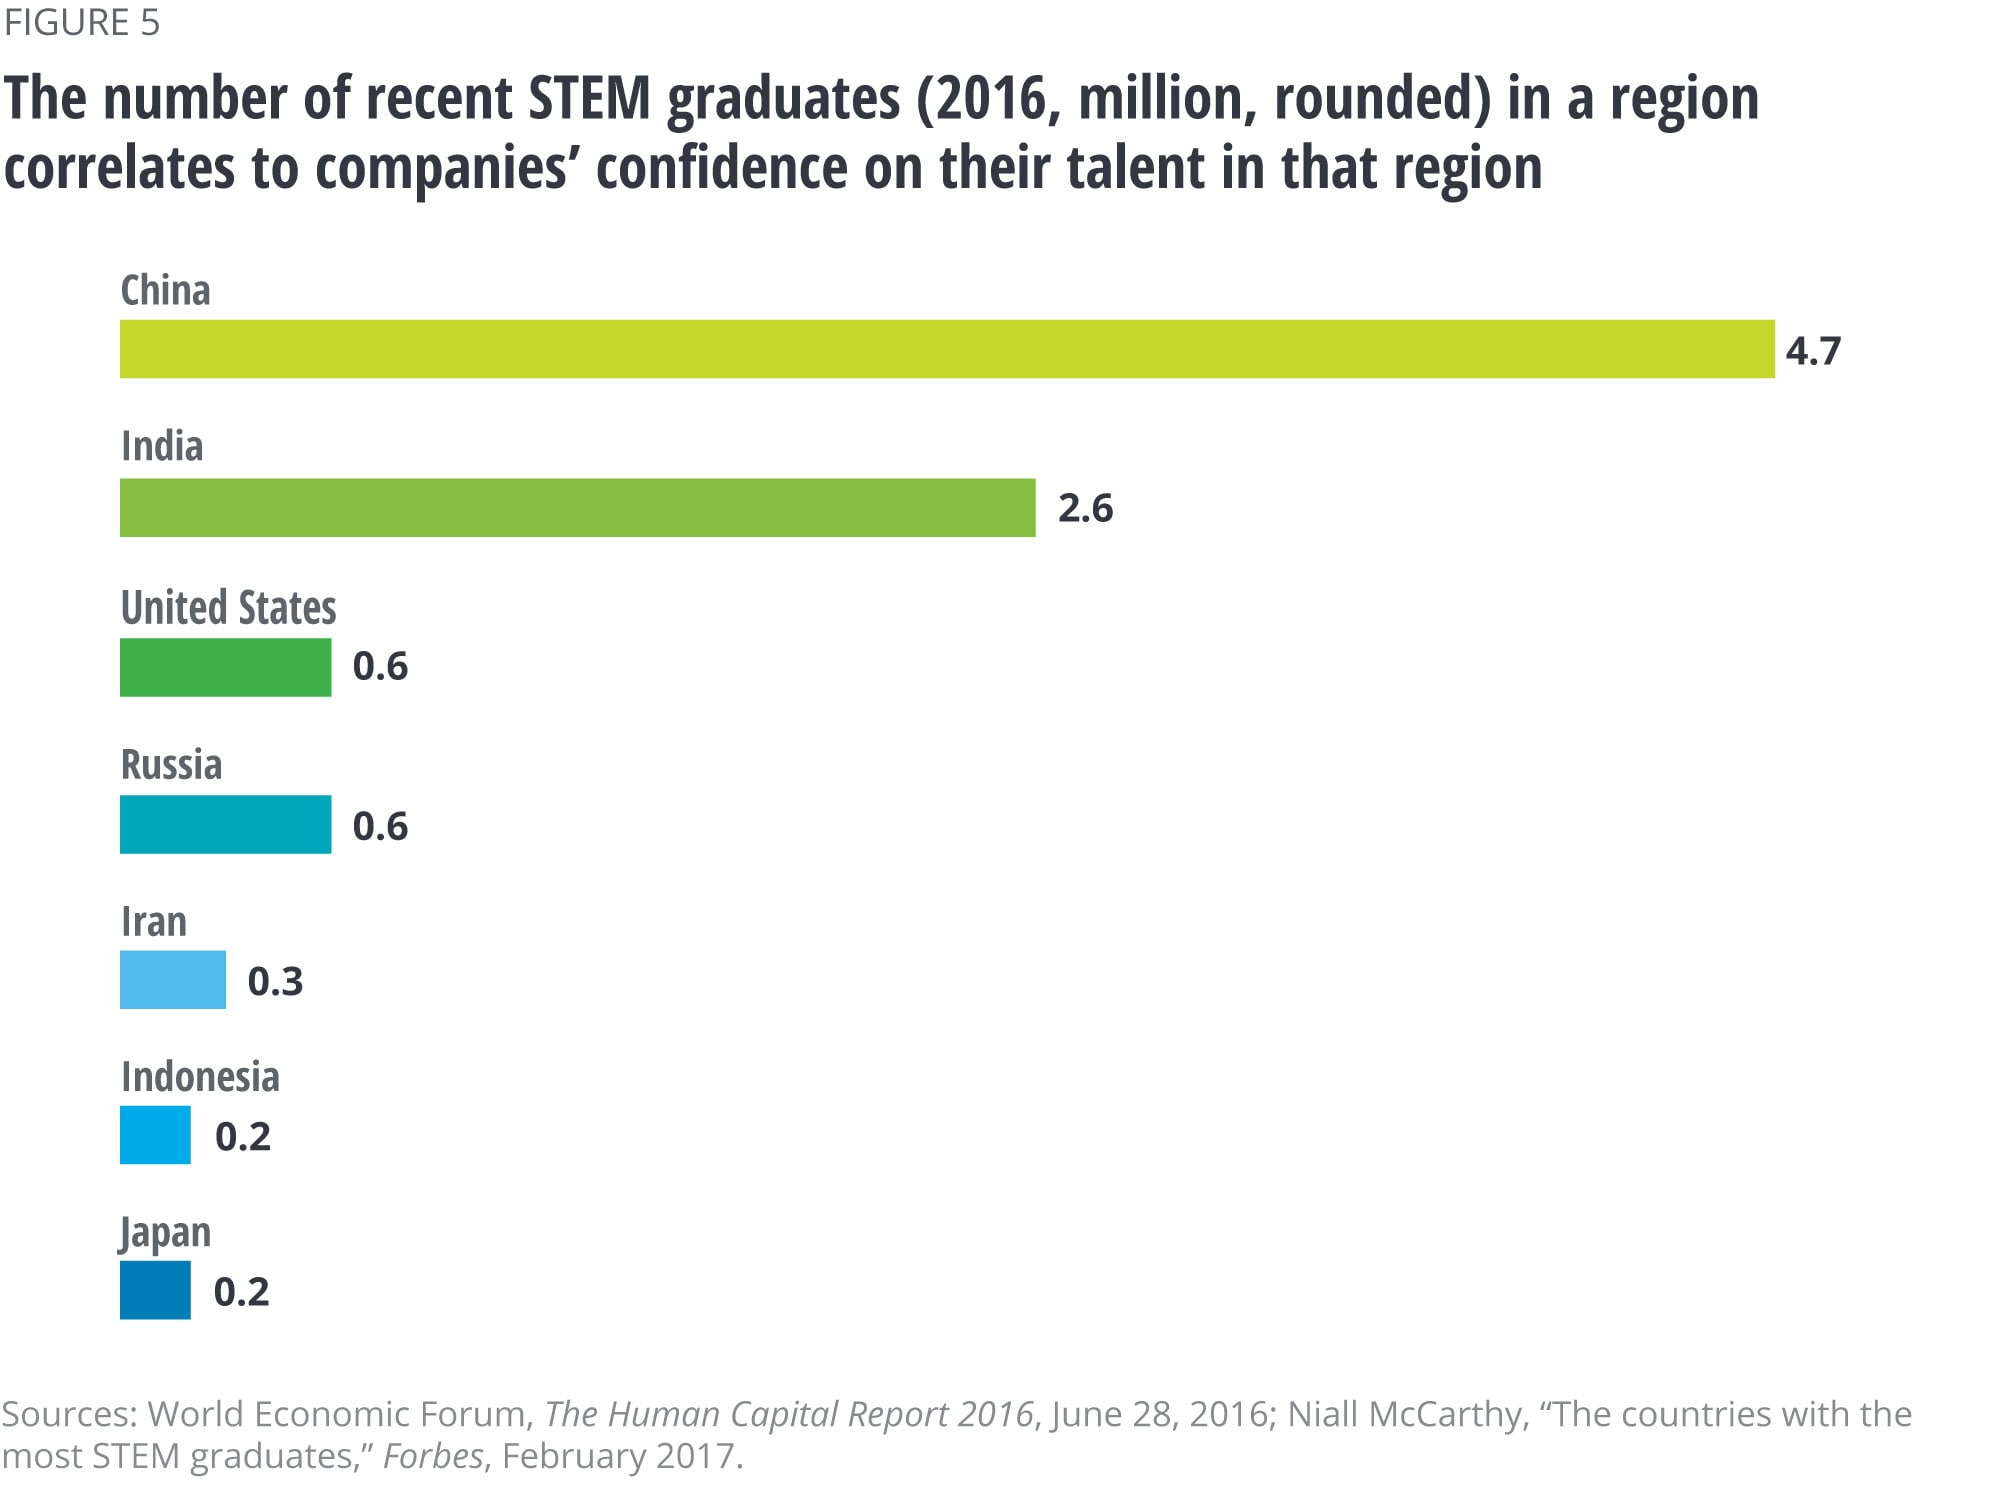 The number of recent STEM graduates (2016, million, rounded) in a region correlates to companies' confidence on their talent in that region